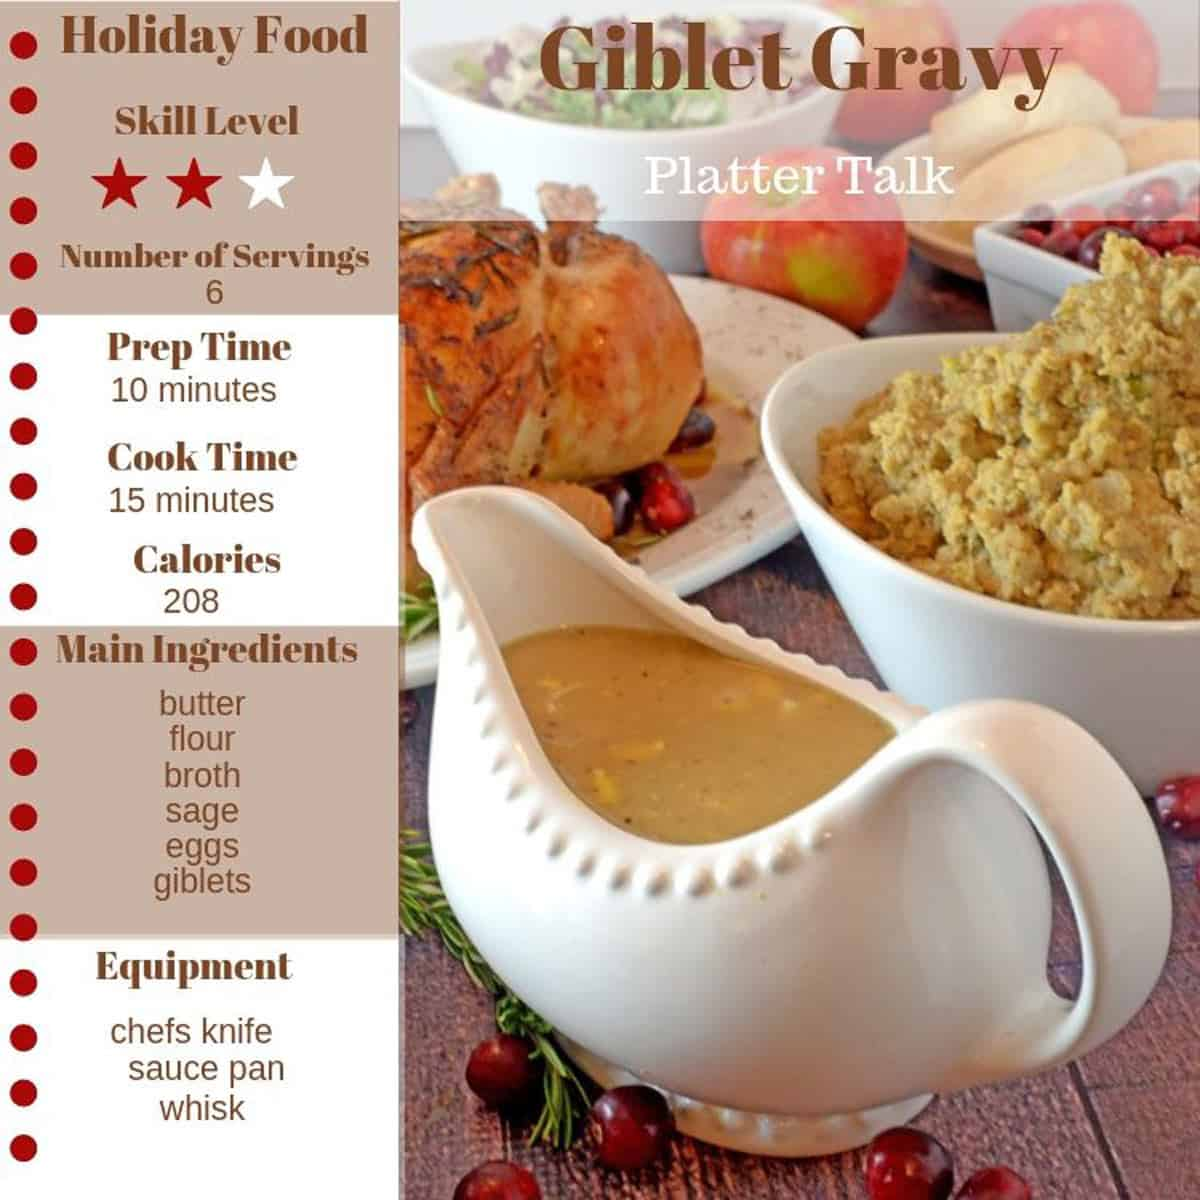 A gravy boat with other food and recipe information.